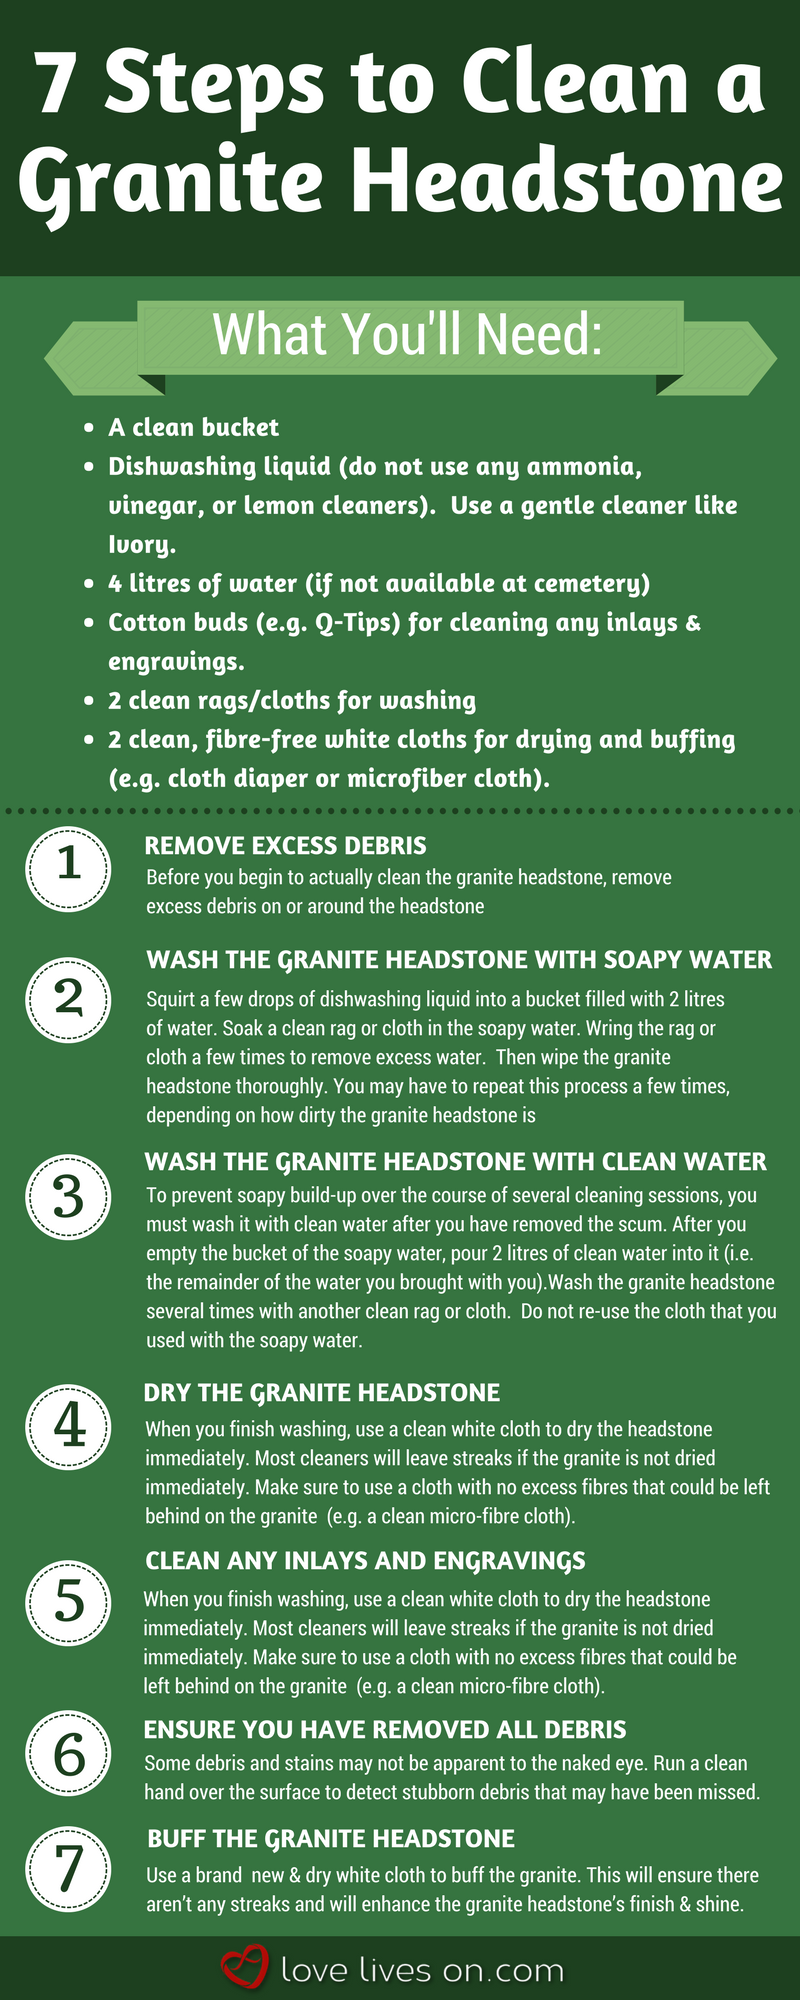 How To Clean A Headstone The Ultimate Guide Cleaning Hacks Deep Cleaning Tips Clean Dishwasher